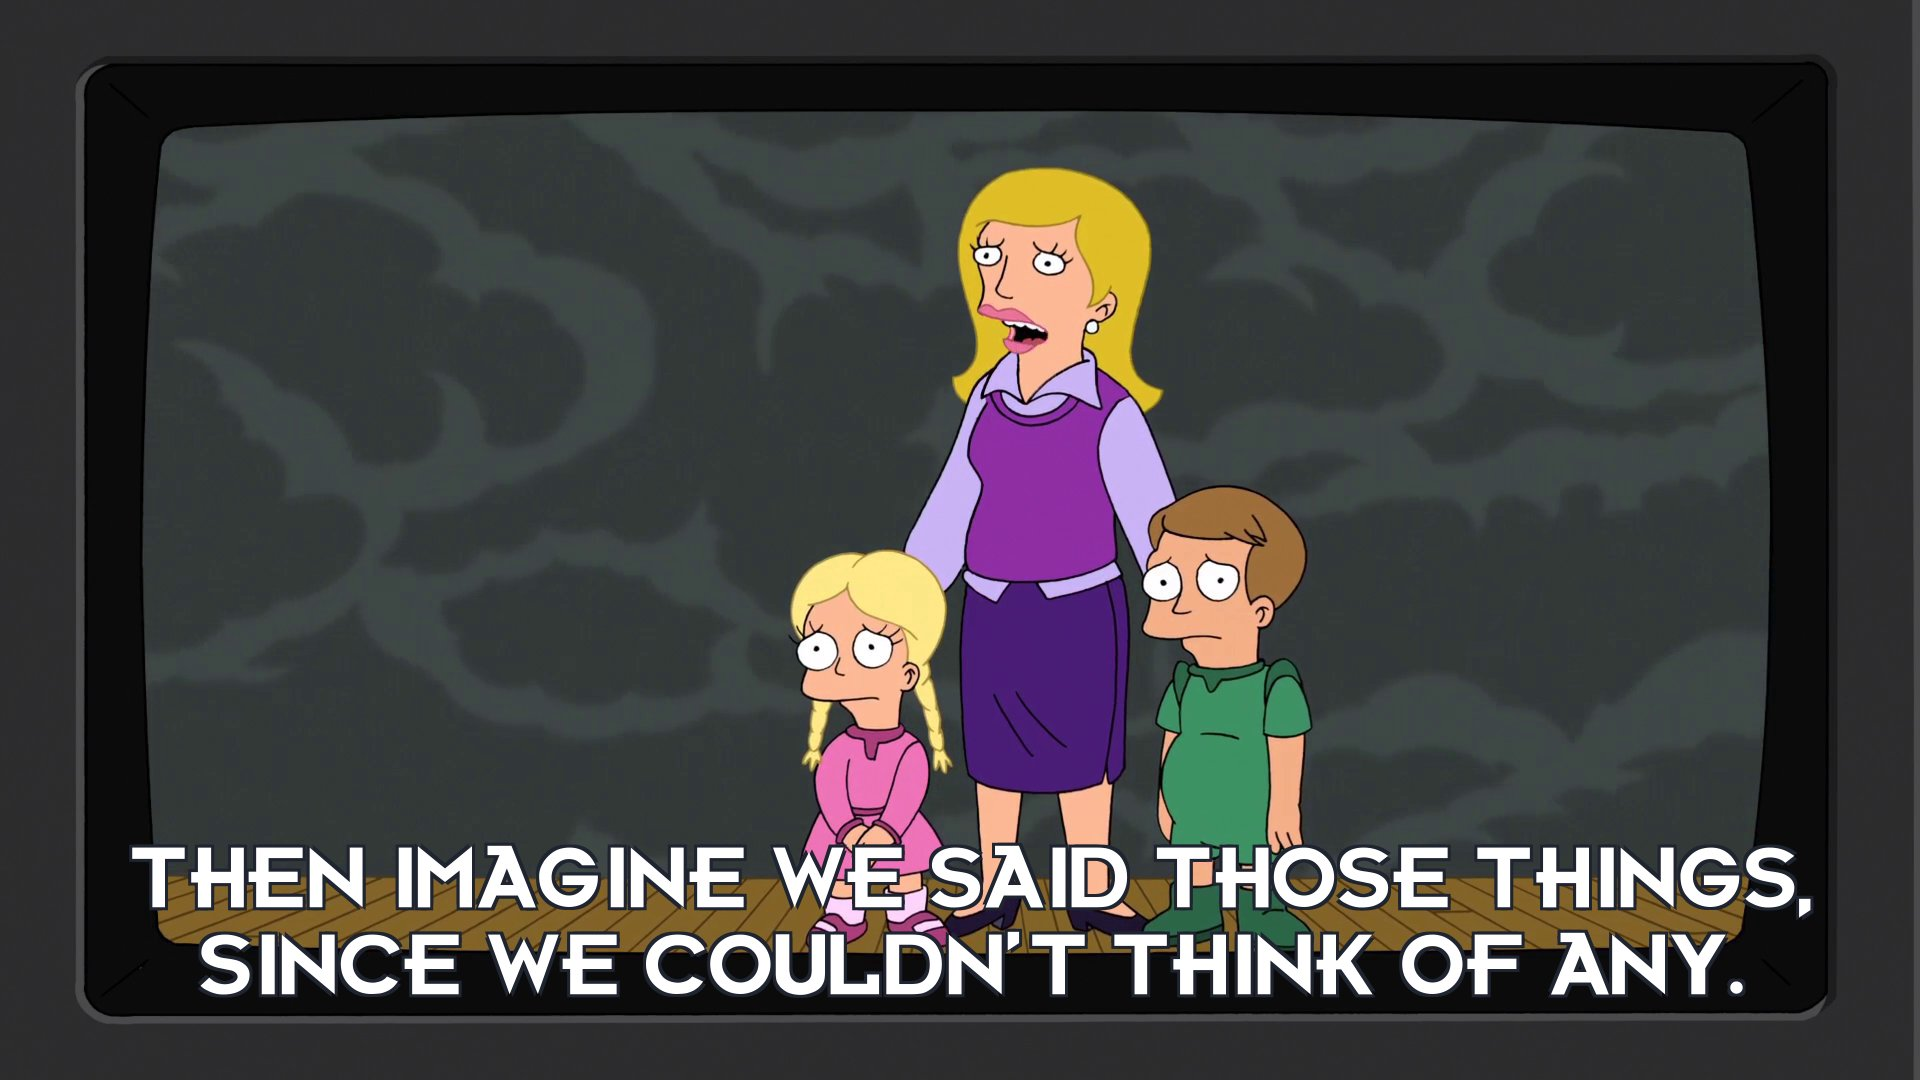 Actor: Then imagine we said those things, since we couldn't think of any.